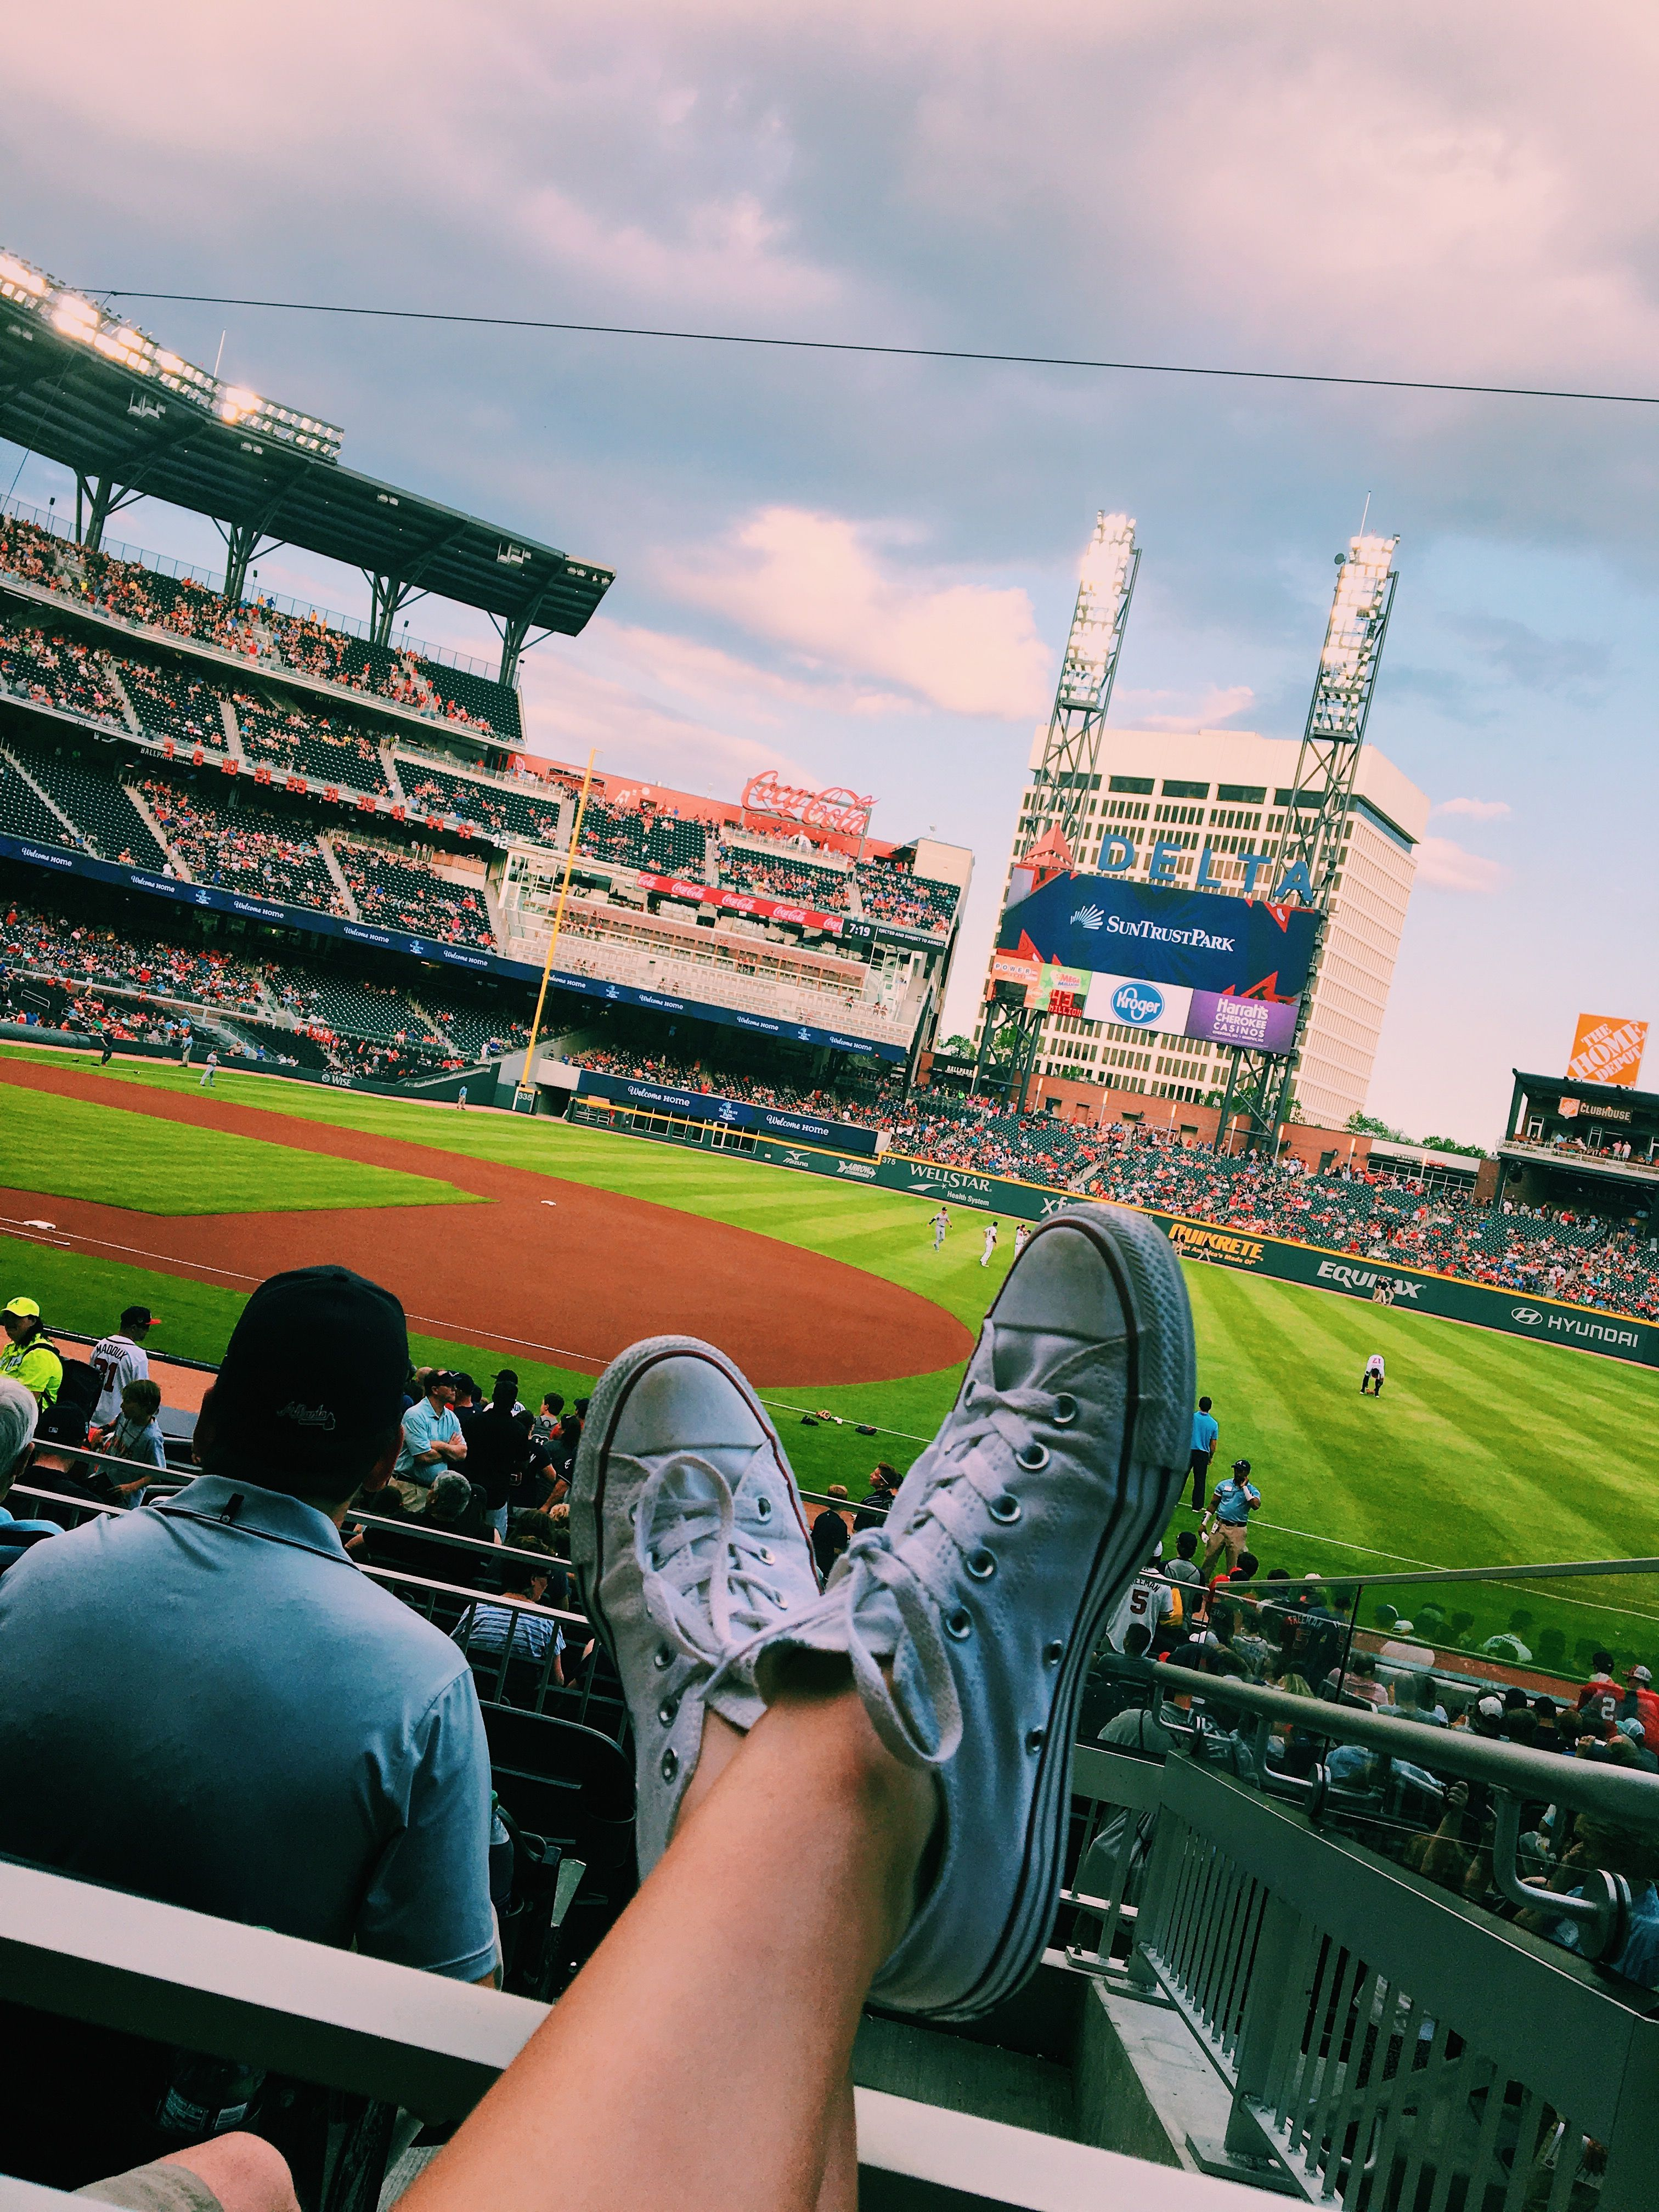 Atlanta Braves Baseball Game Ig Jessicaclaark Vsco Jessicaclarrk Baseball Games Braves Game Atlanta Braves Game